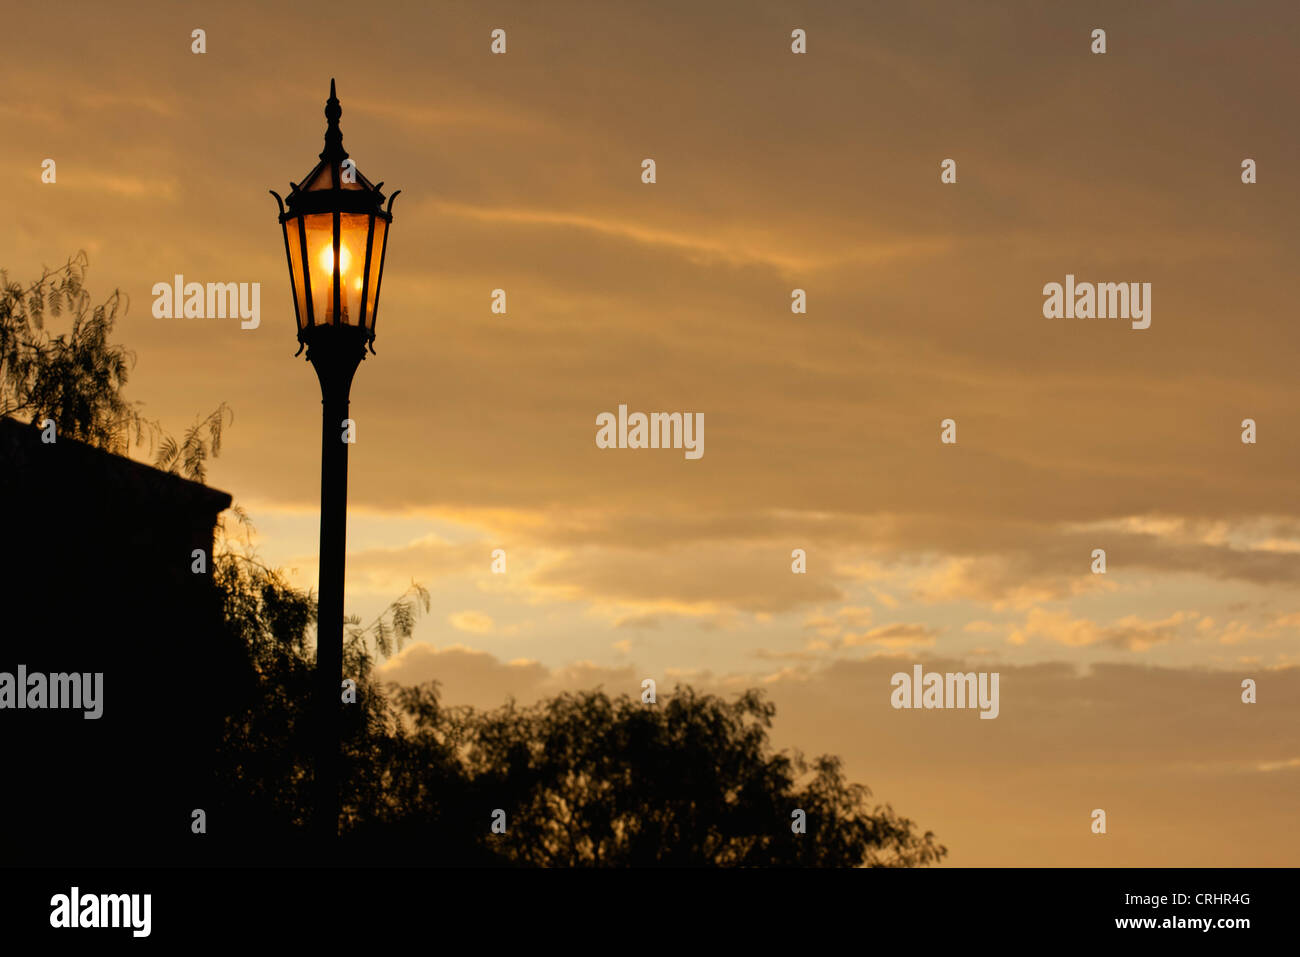 Street lamp illuminated at sunset - Stock Image